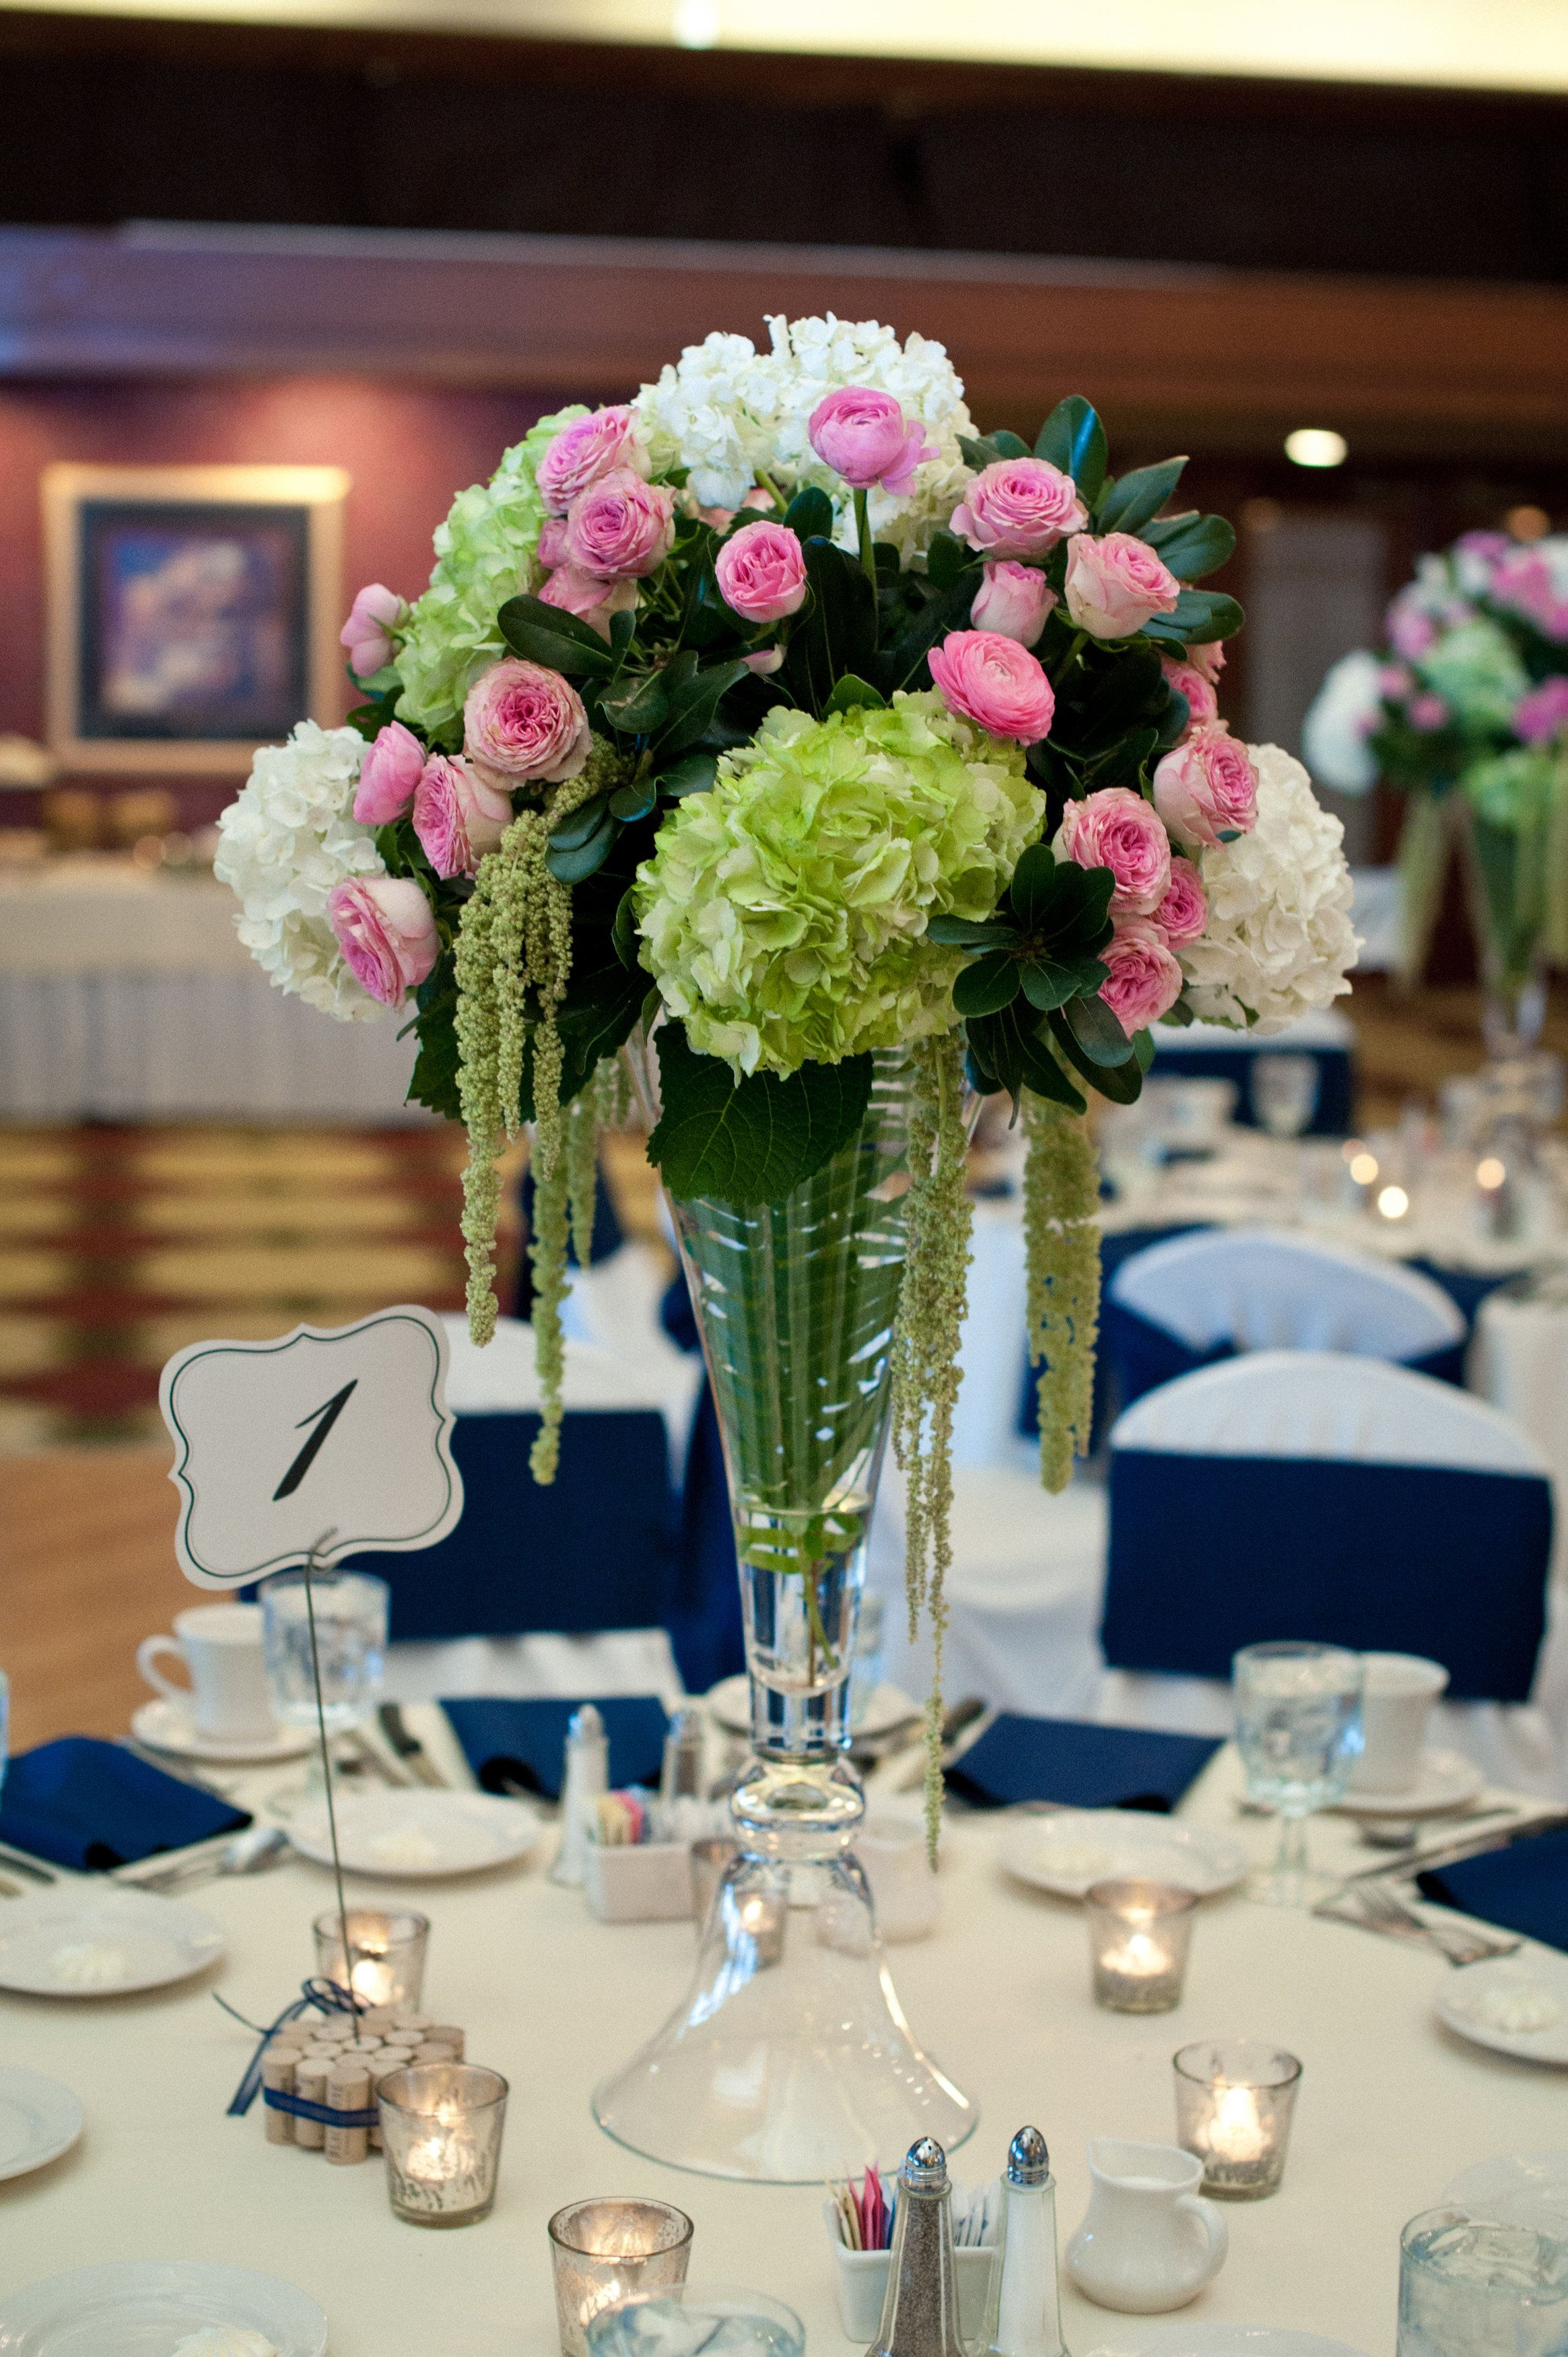 29 Tall Centerpieces That Will Take Your Reception Tables ... |Tall Green Centerpiece